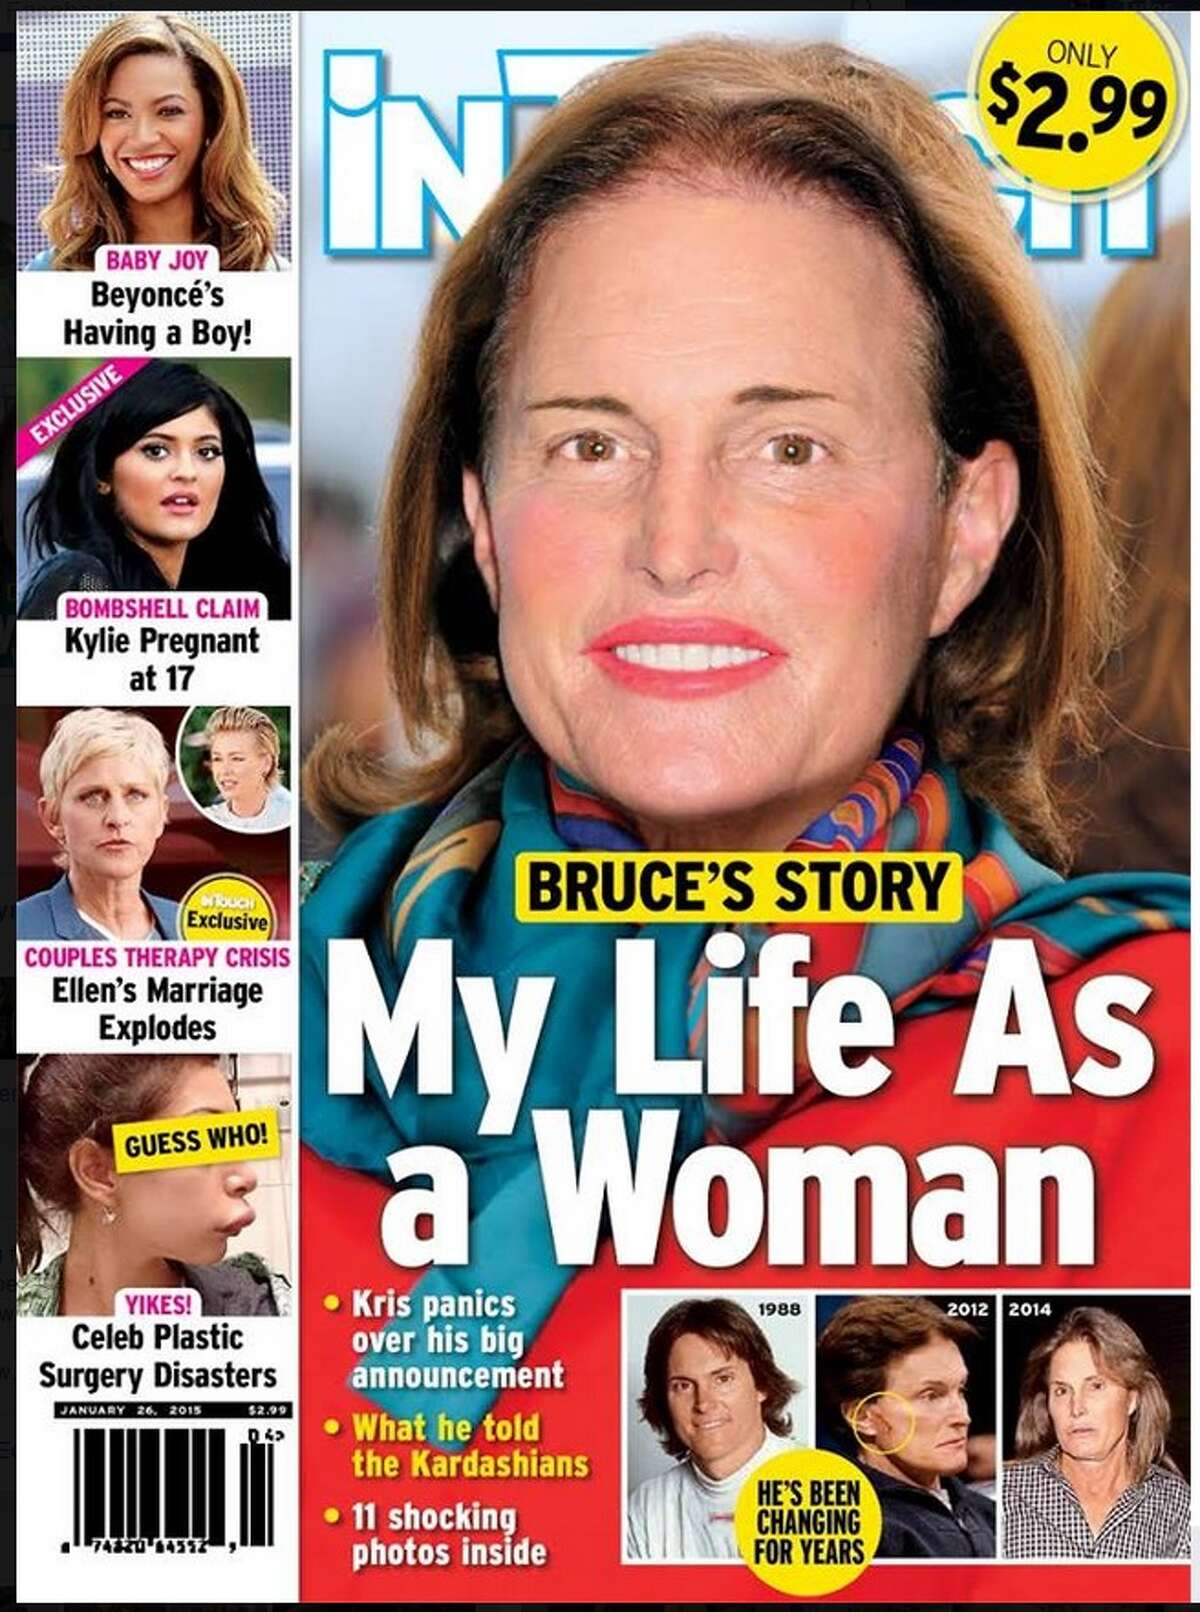 Photo of the controversial InTouch Weekly cover that includes a Photoshopped image of Bruce Jenner wearing makeup.